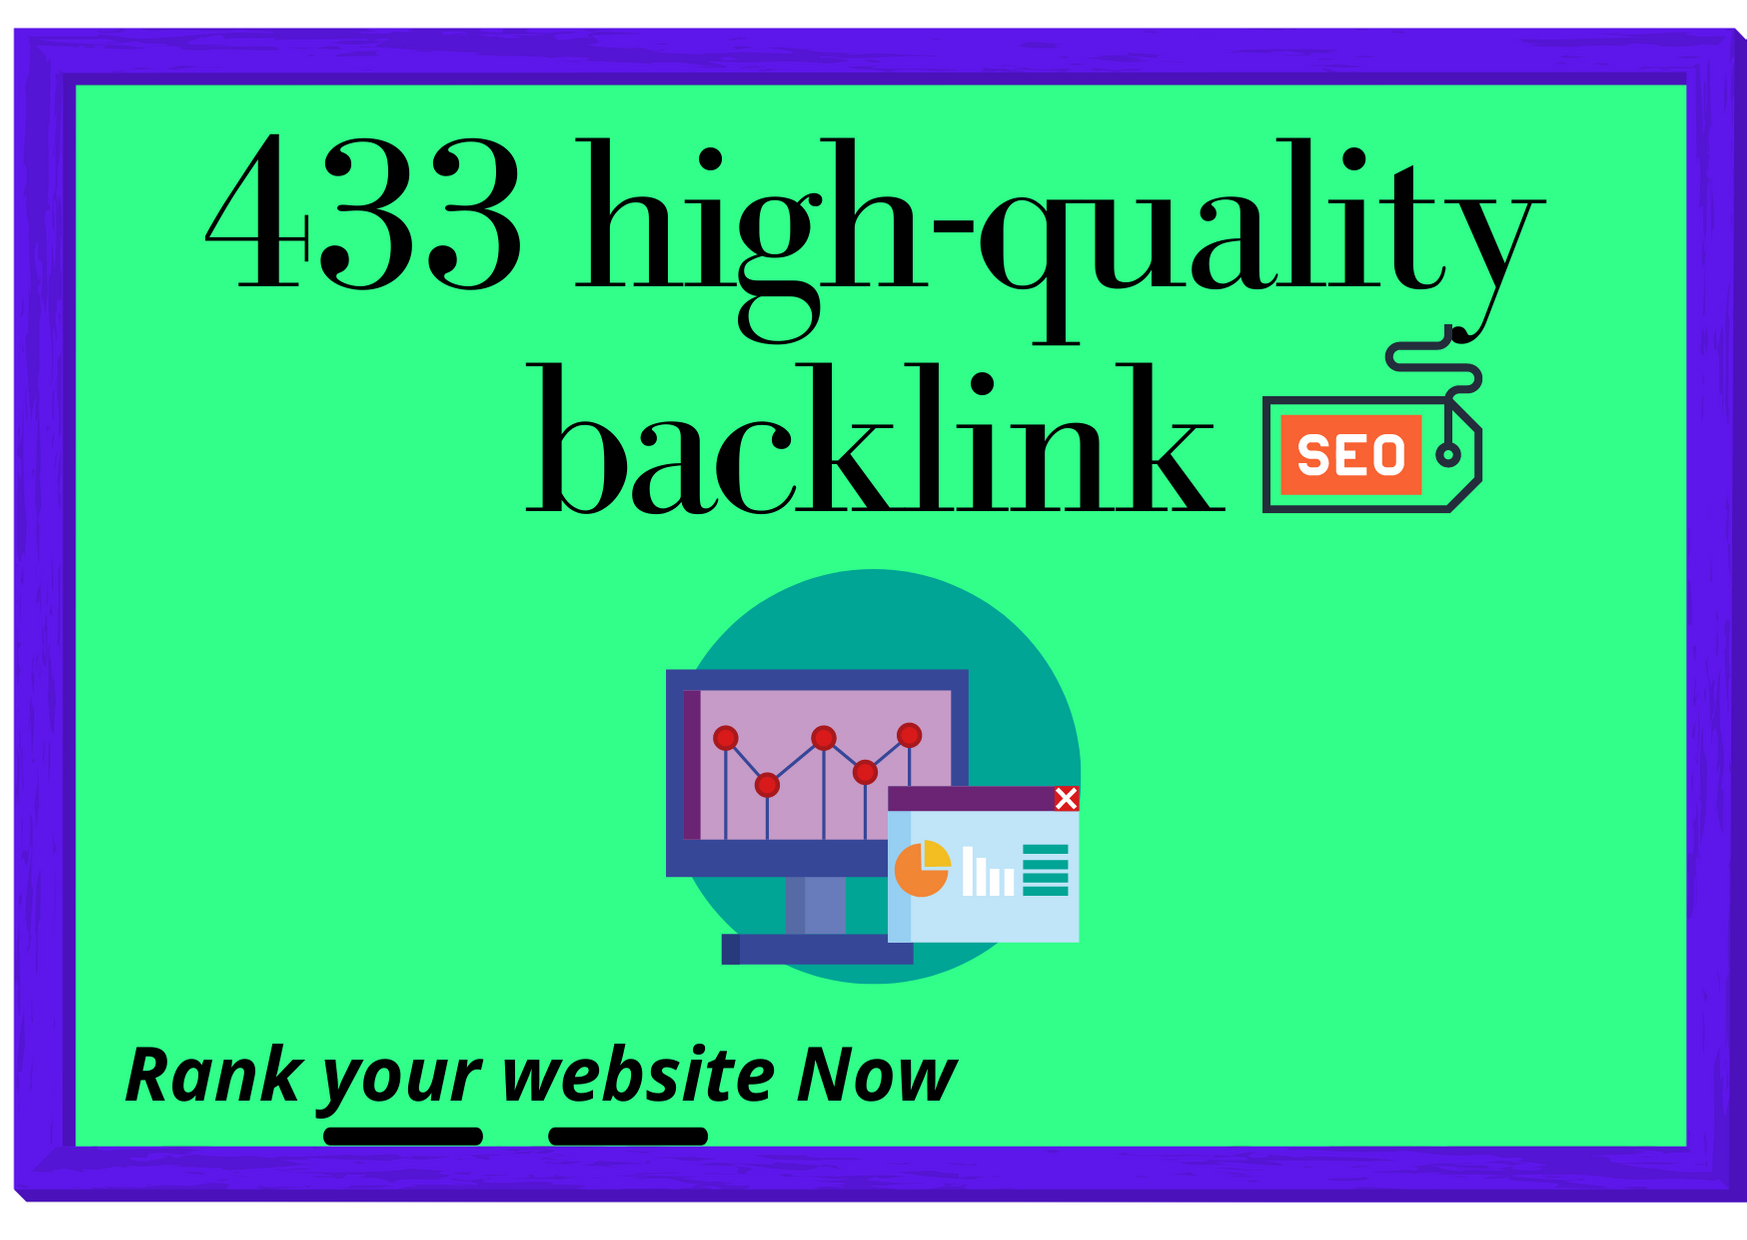 I will do 430+ High-quality backlink for rank your website